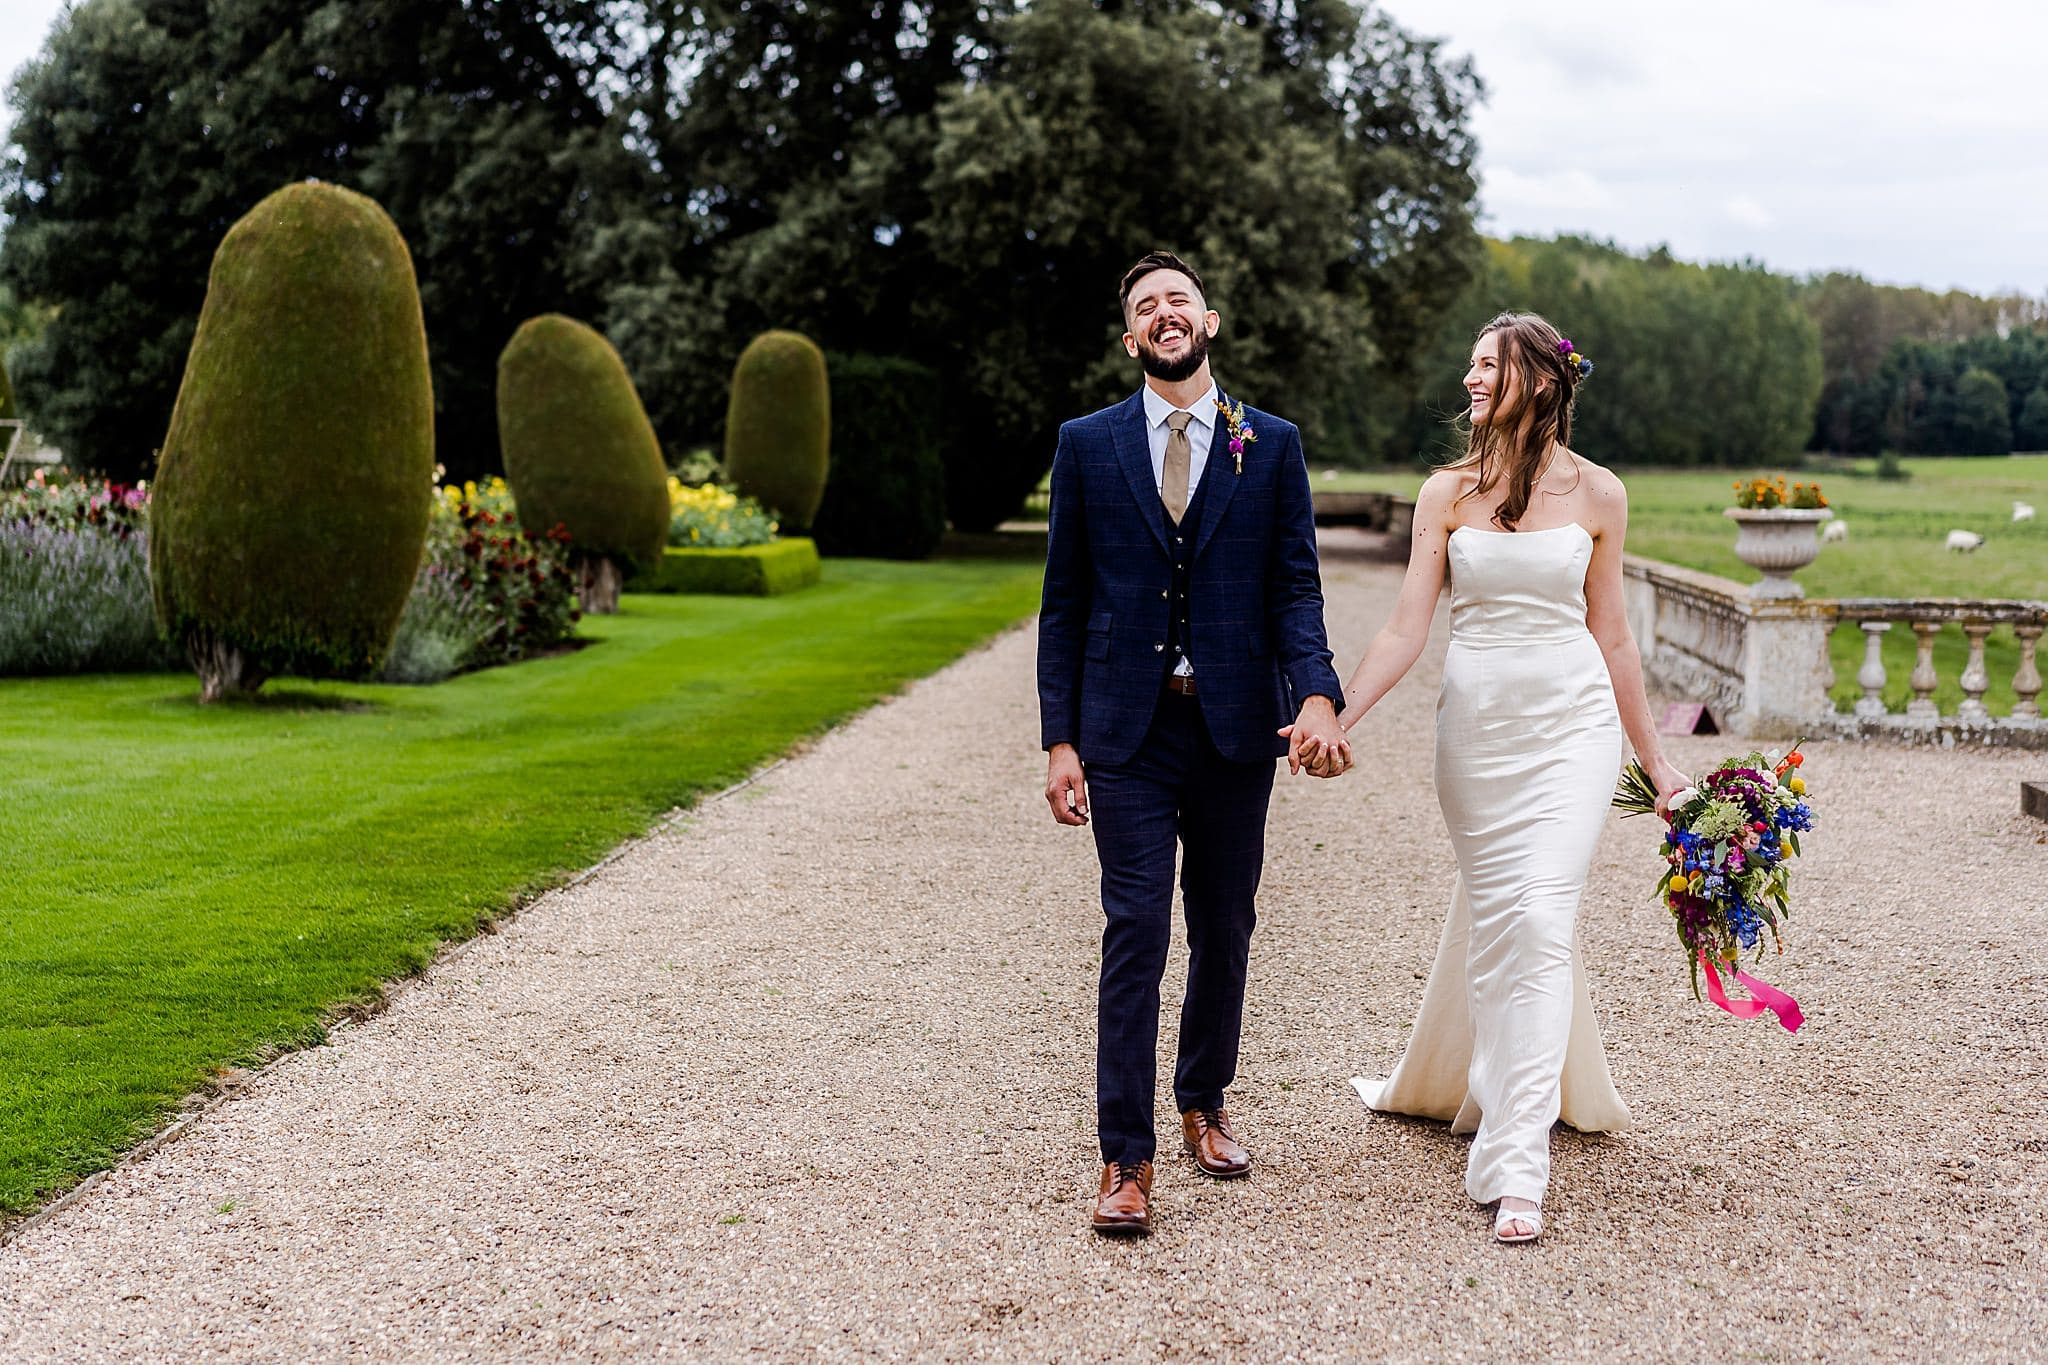 Bride and groom take a walk around the beautiful gardens at Prestwold Hall